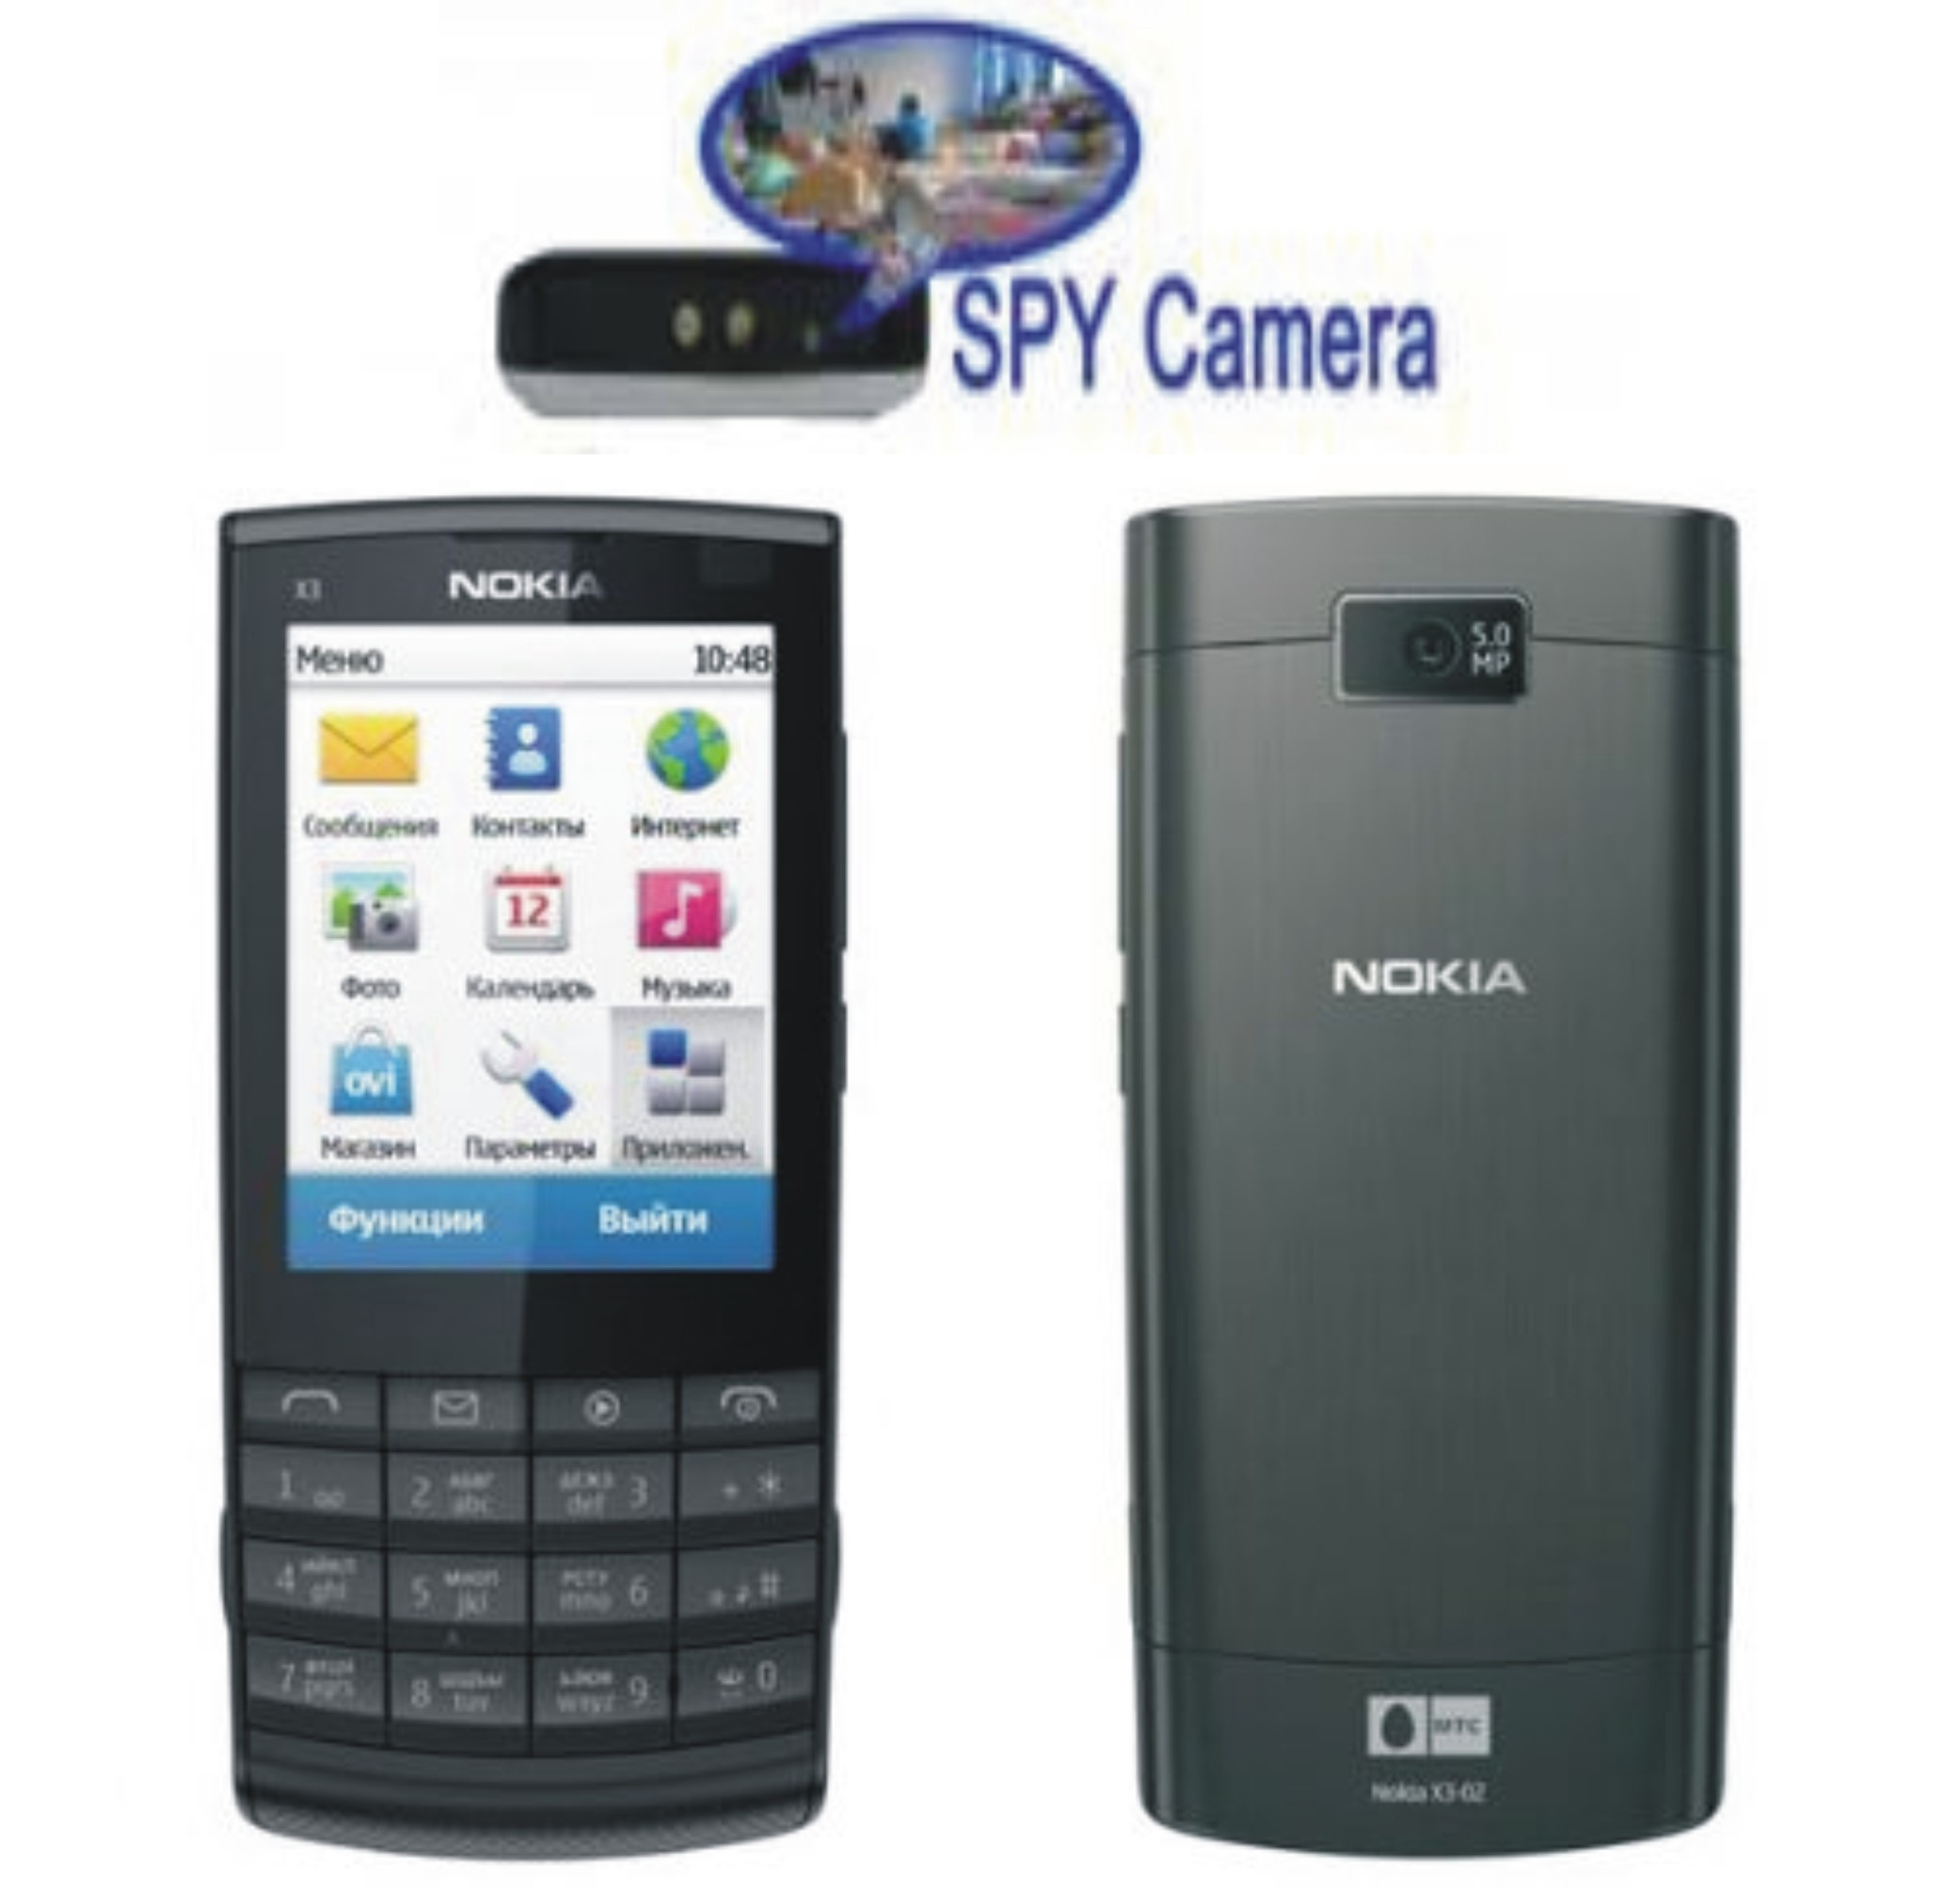 Spy Camera In Nokia Phone Touch Screen In Hoshiarpur